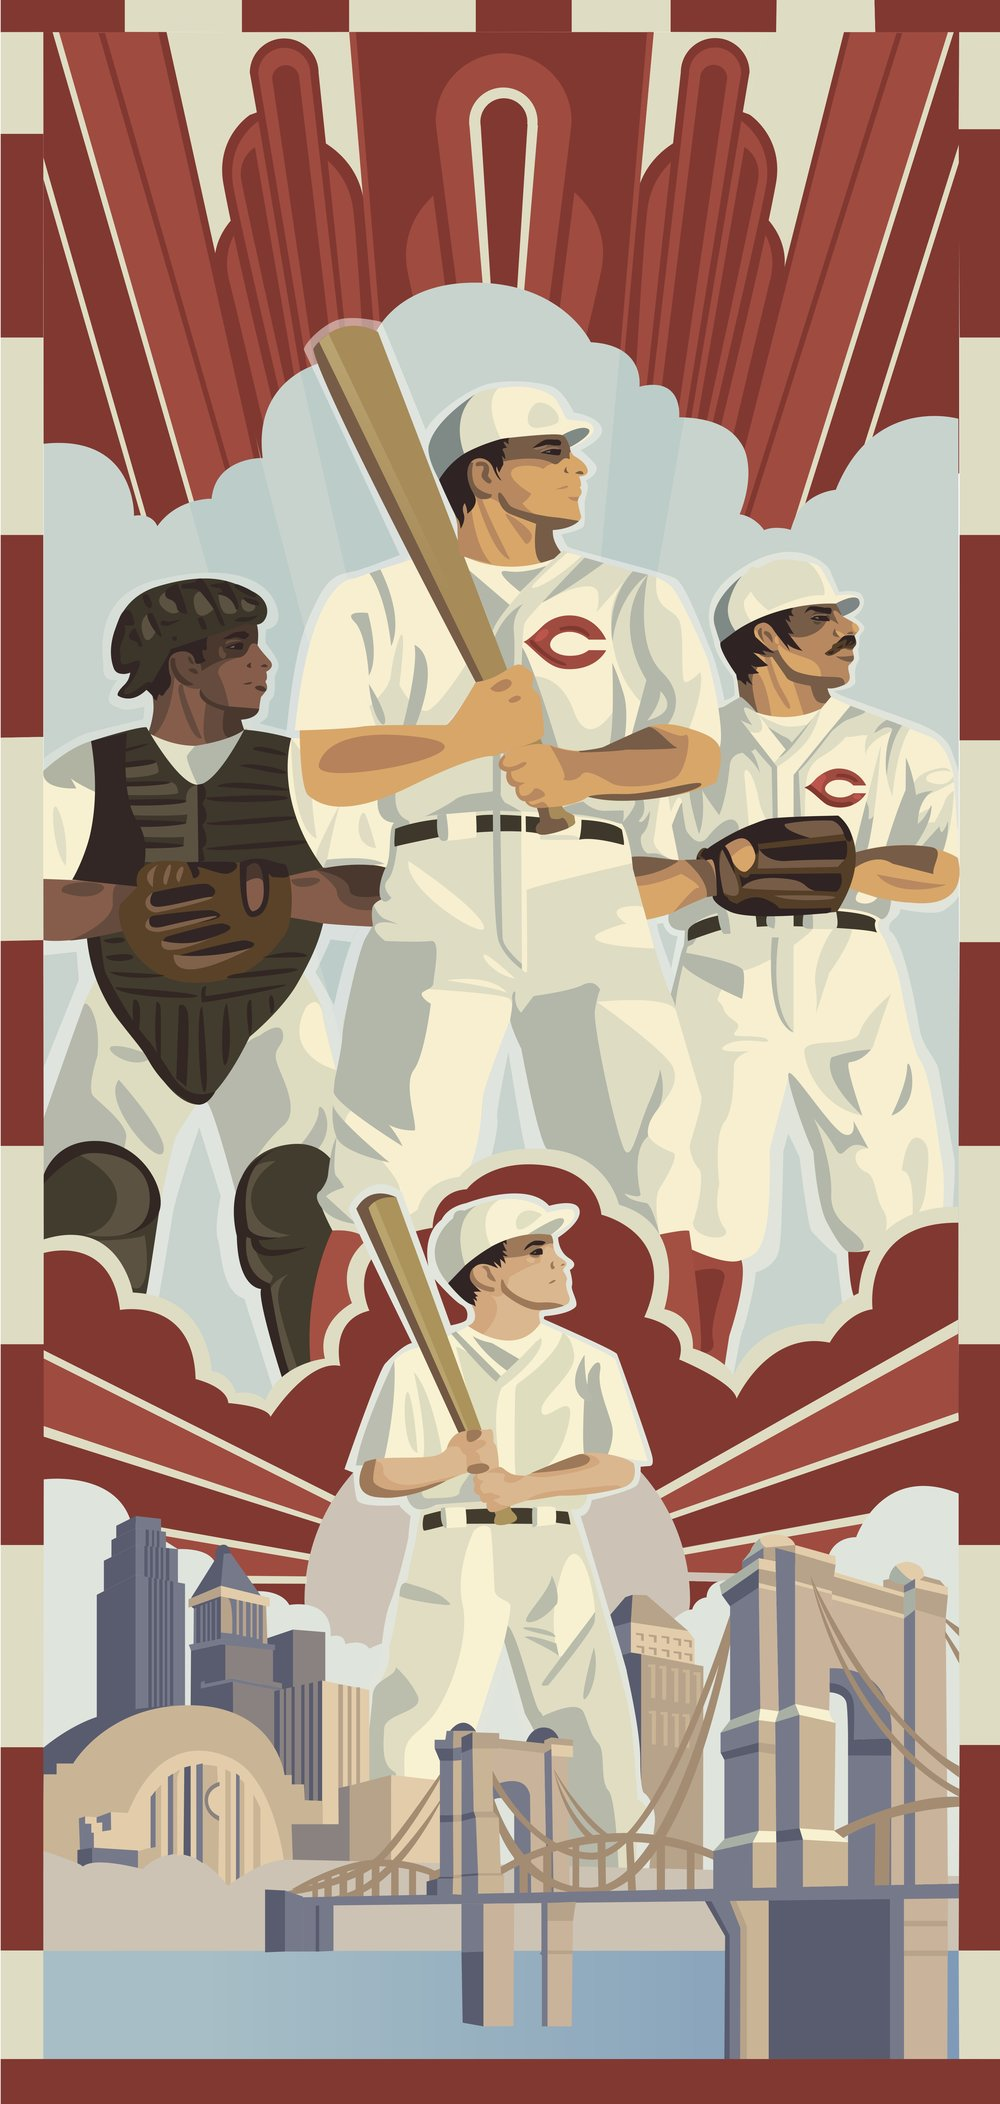 Great_American_Ballpark_basrelief_artdeco.jpg